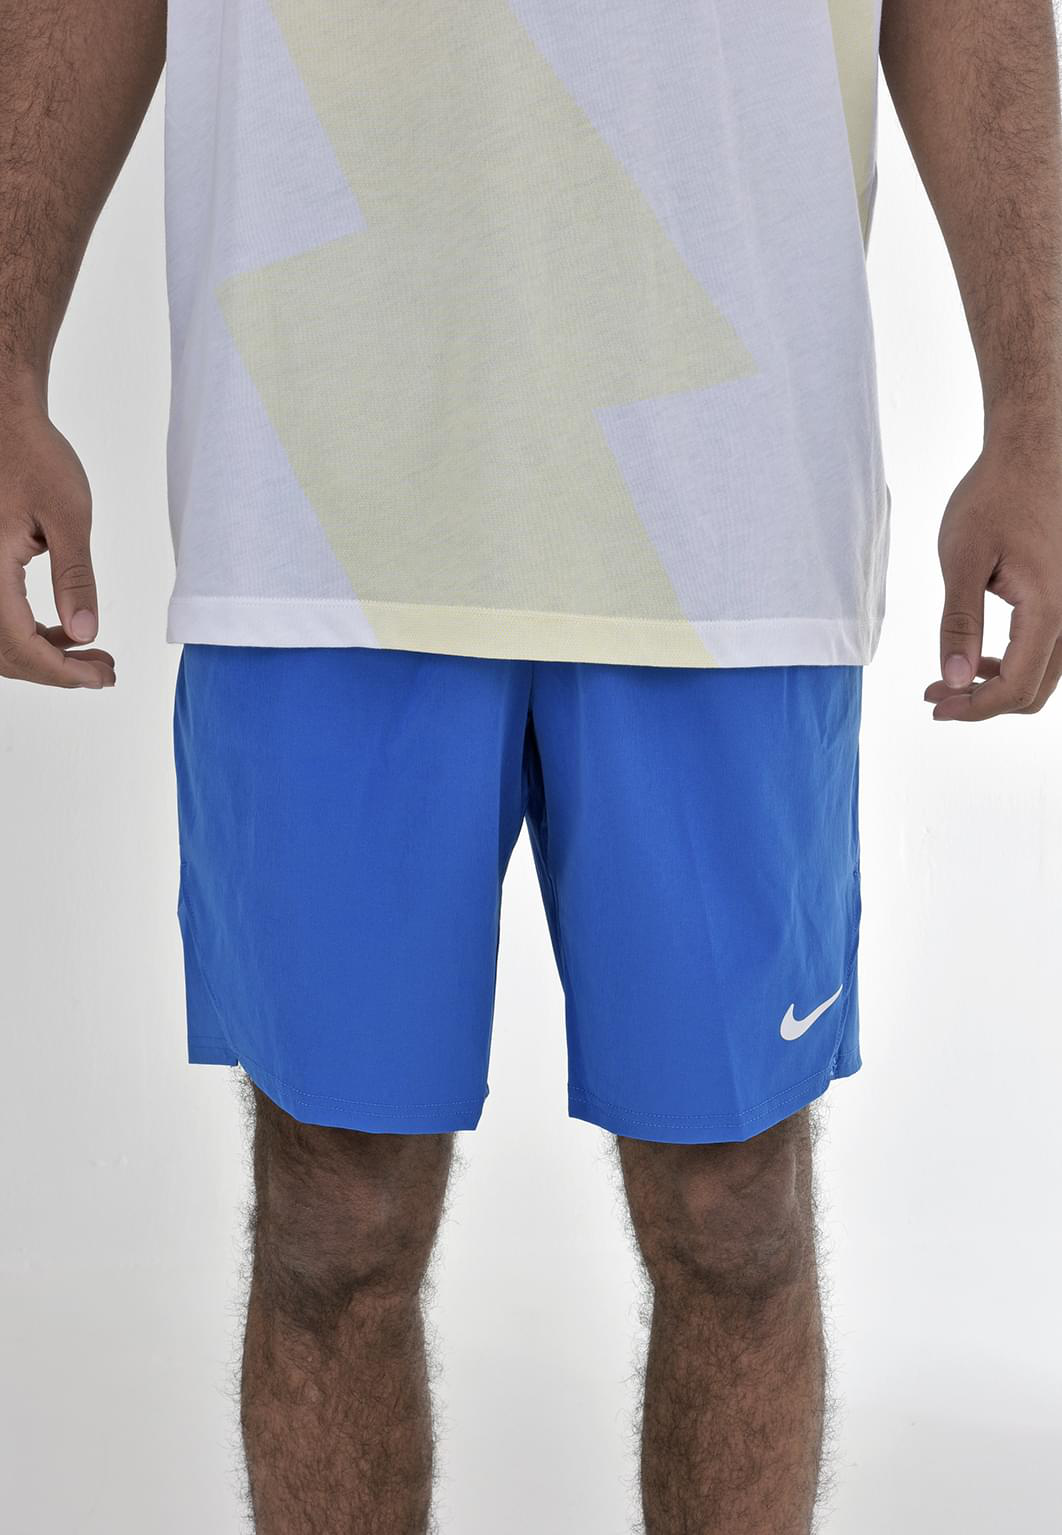 NIKE NKCT FLX ACE SHORT 9IN 887515_____0403 Férfi